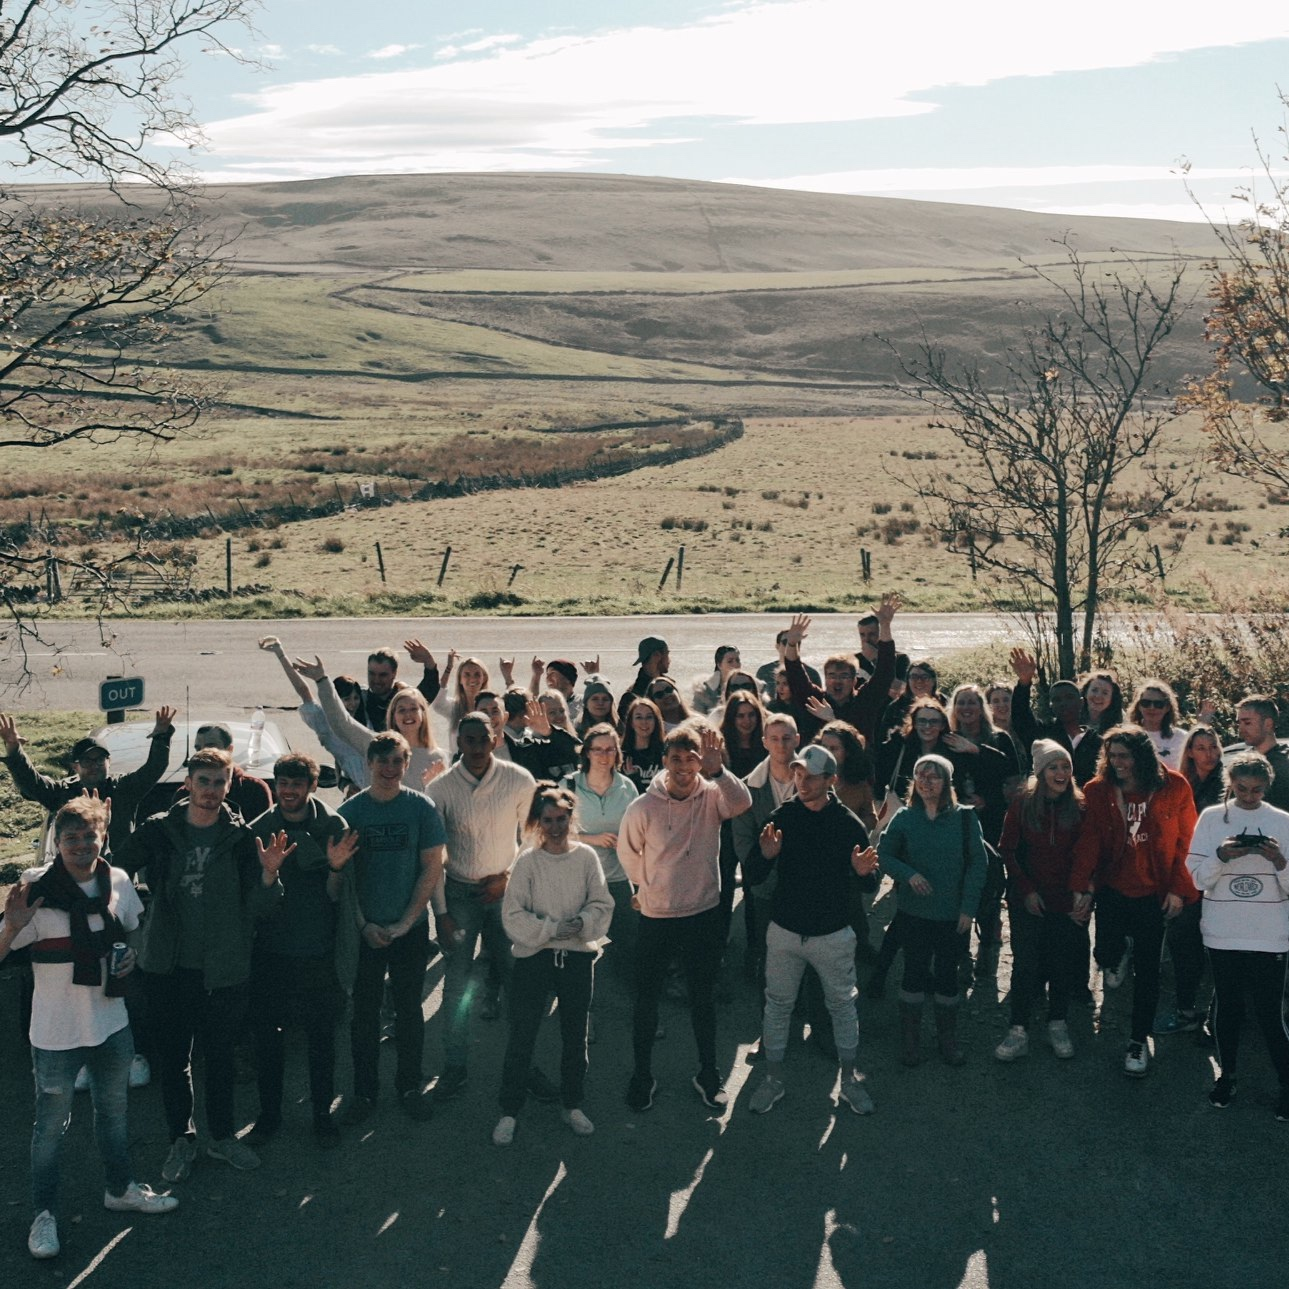 WKND AWAY - In 2018 we had our very first 18-30s weekend away. We had an incredible weekend of activities, gatherings, worship and getting to know God on a whole new level! Watch this space for our next one.